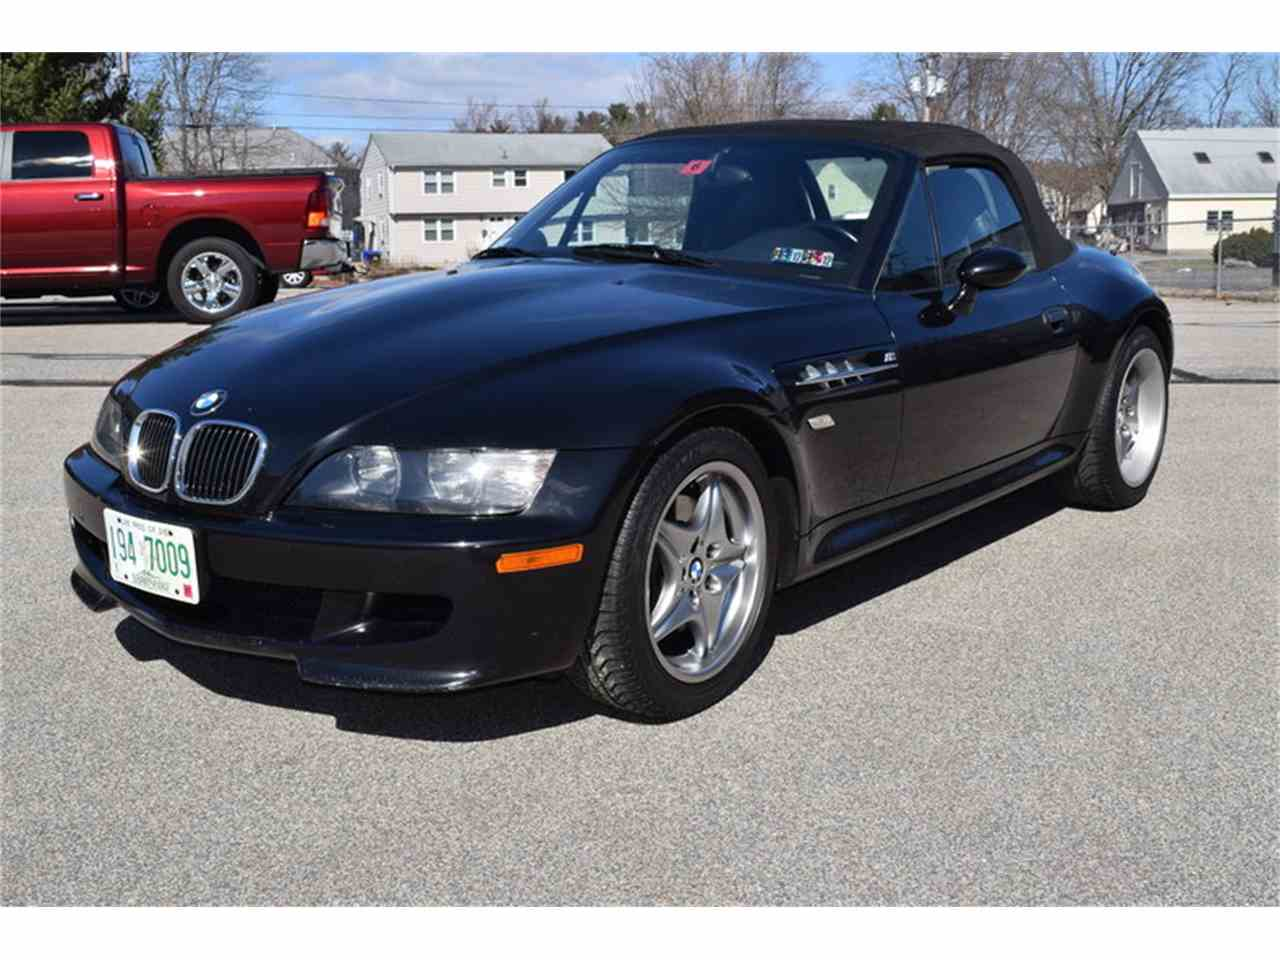 BMW Convertible 2001 bmw m roadster 2001 BMW M Roadster for Sale | ClassicCars.com | CC-892666